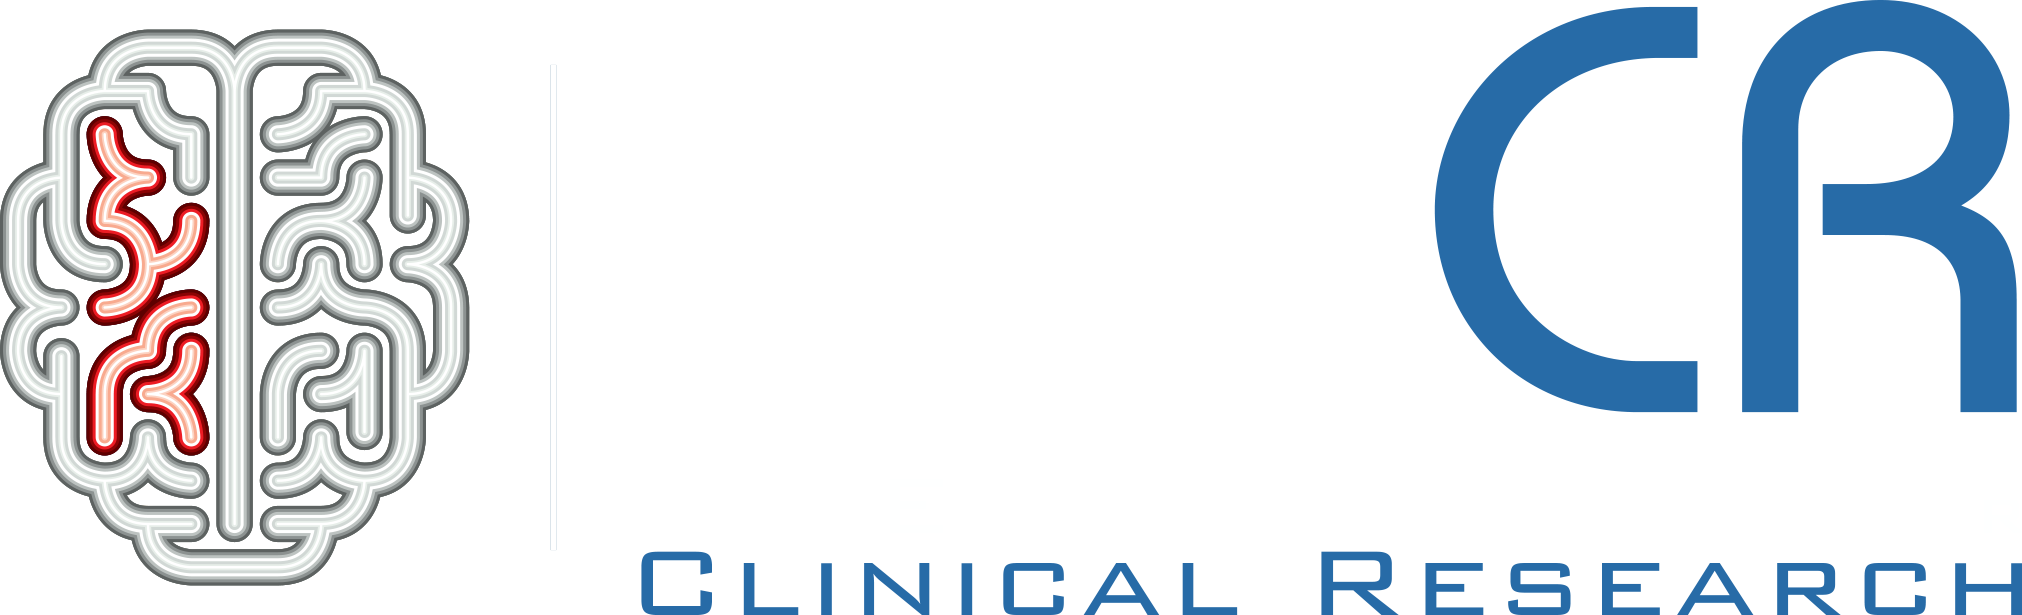 NEICR Clinical Research and Clinical Studies Stamford CT